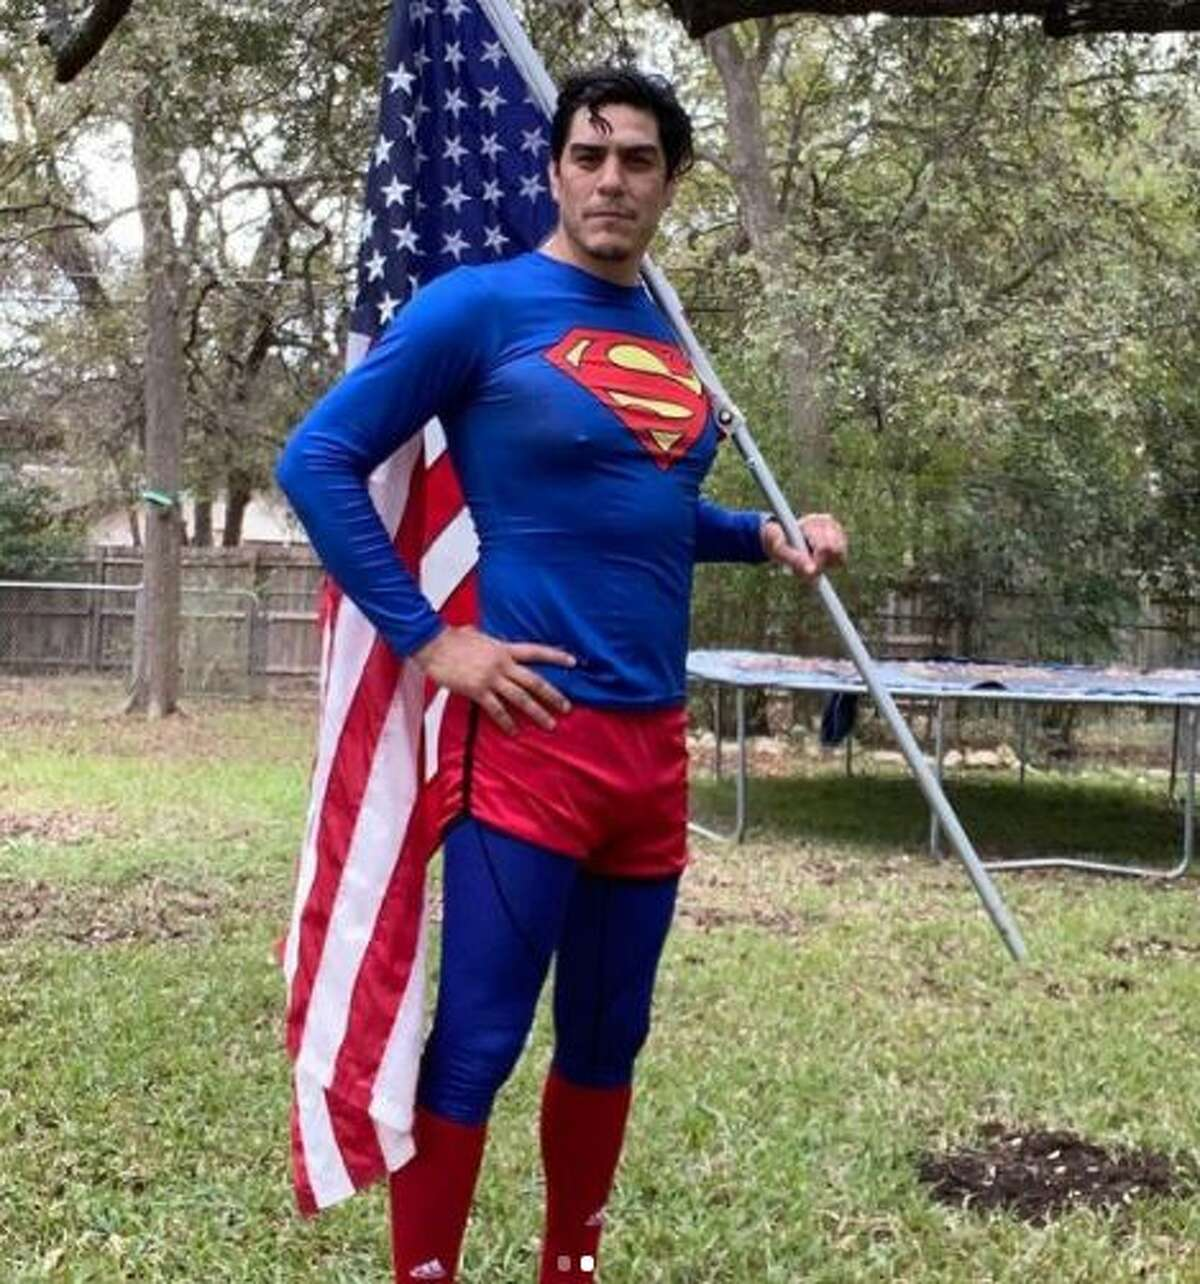 If you've missed the local man who runs in a Superman outfit, Wednesday might be the last time to catch him for a while.